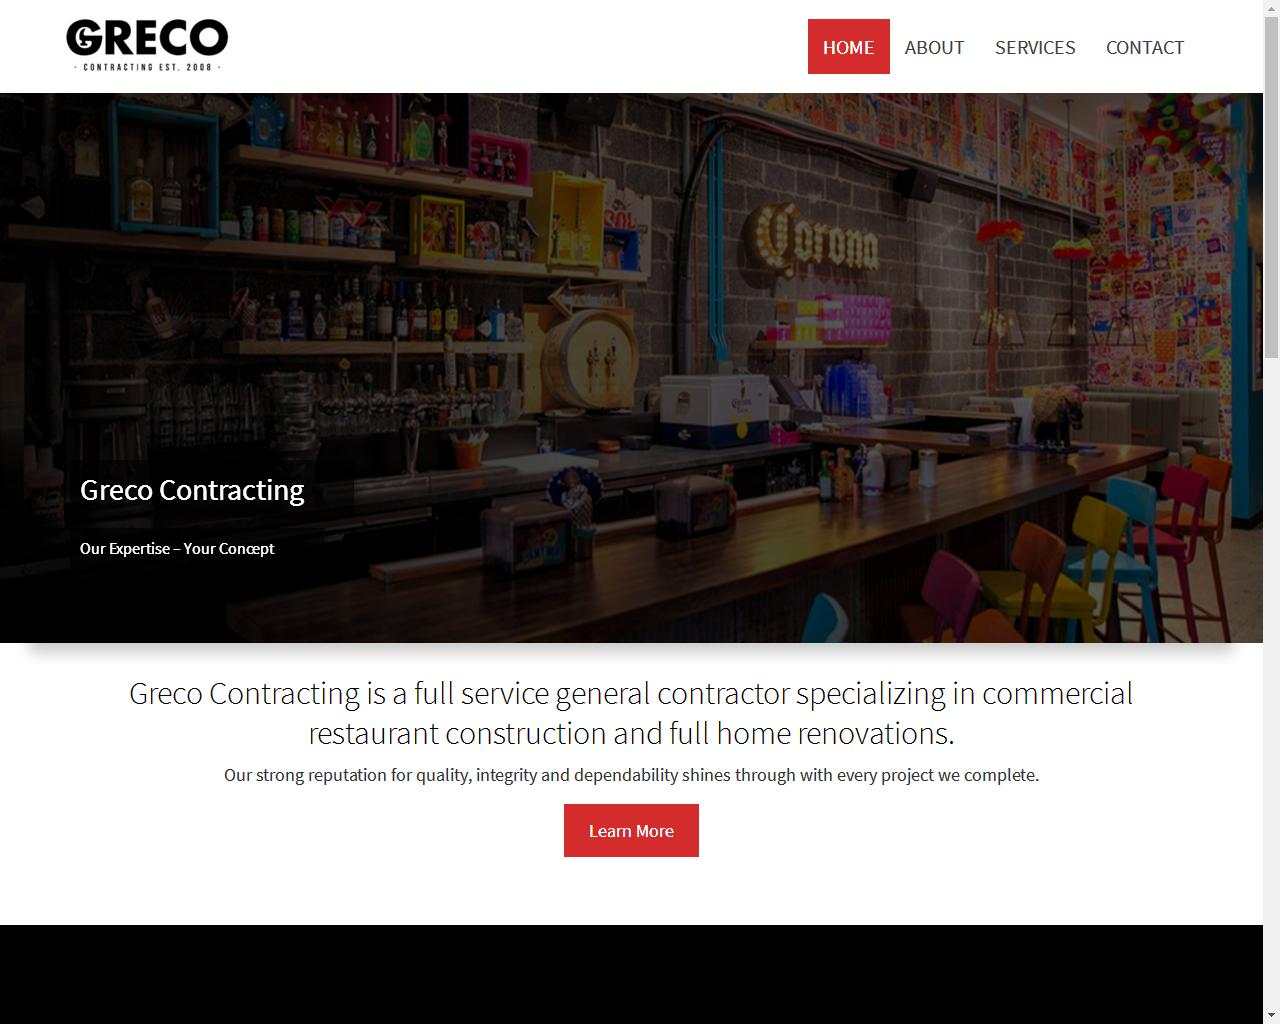 Greco Contracting